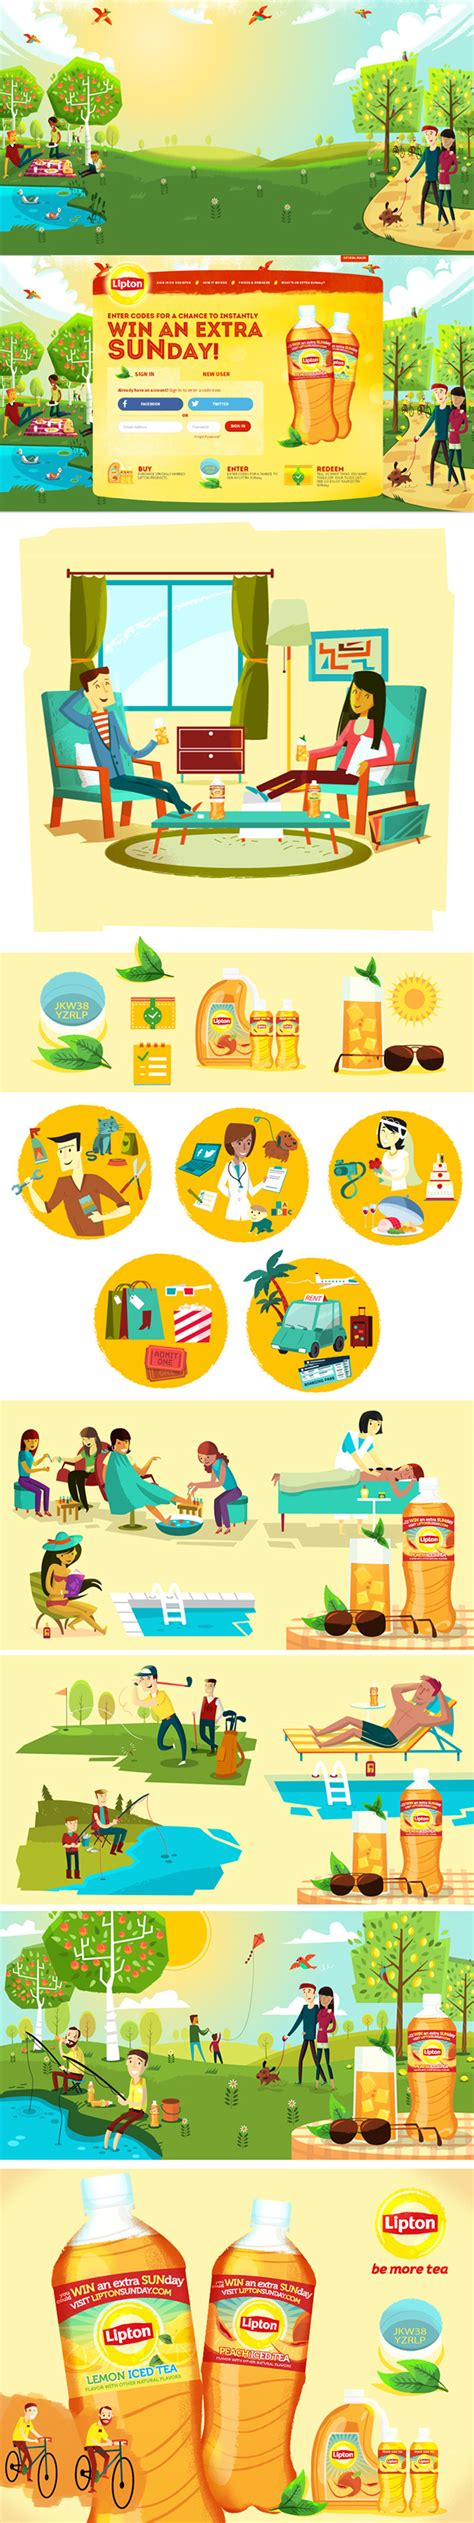 lipton akll ay barda on behance lipton sunday illustrations on behance